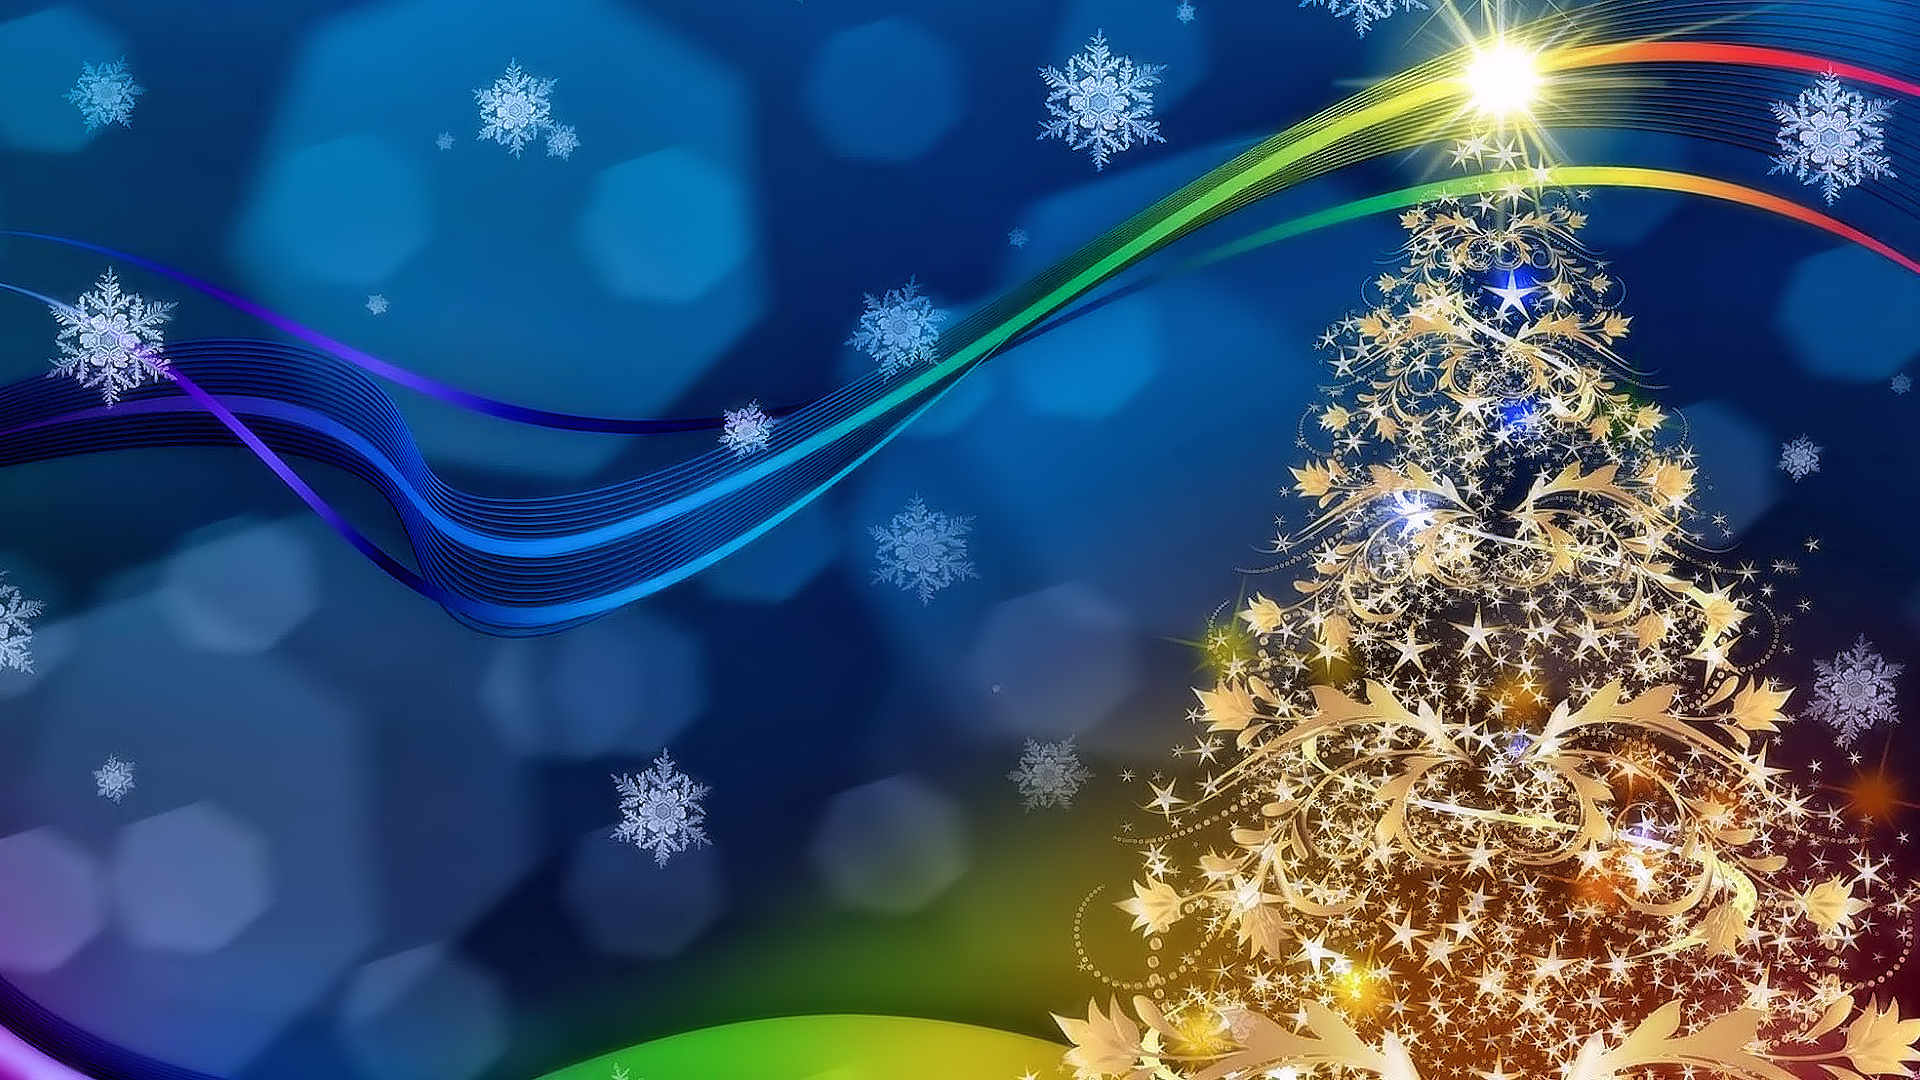 Free Xmas Wallpapers Animated Golden Christmas Tree Flakes Decorative Festive Hd